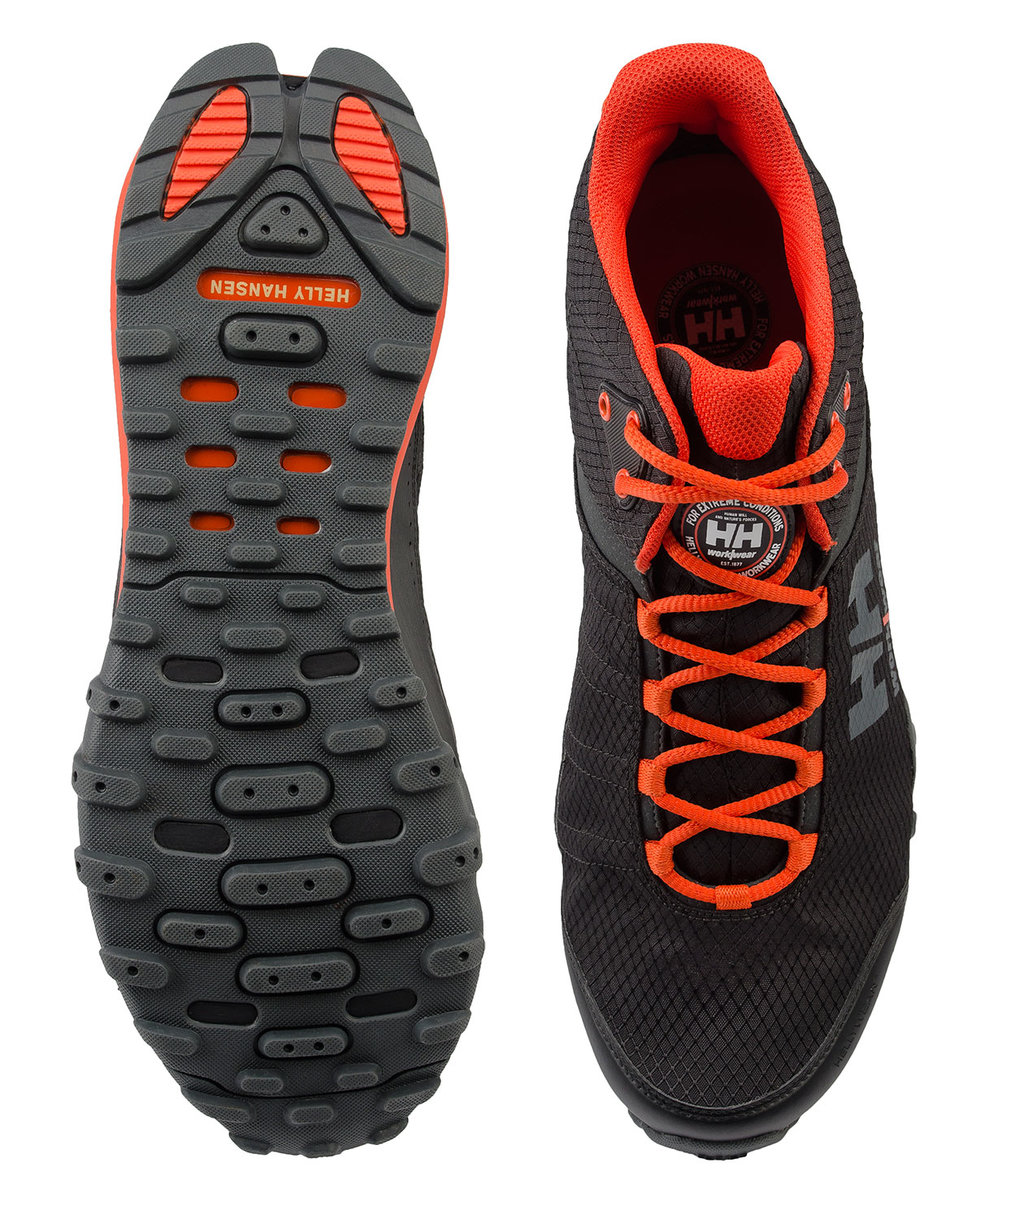 e125bf592b5 Helly Hansen WW Rabbora Trail Mid running shoes, Black/Orange